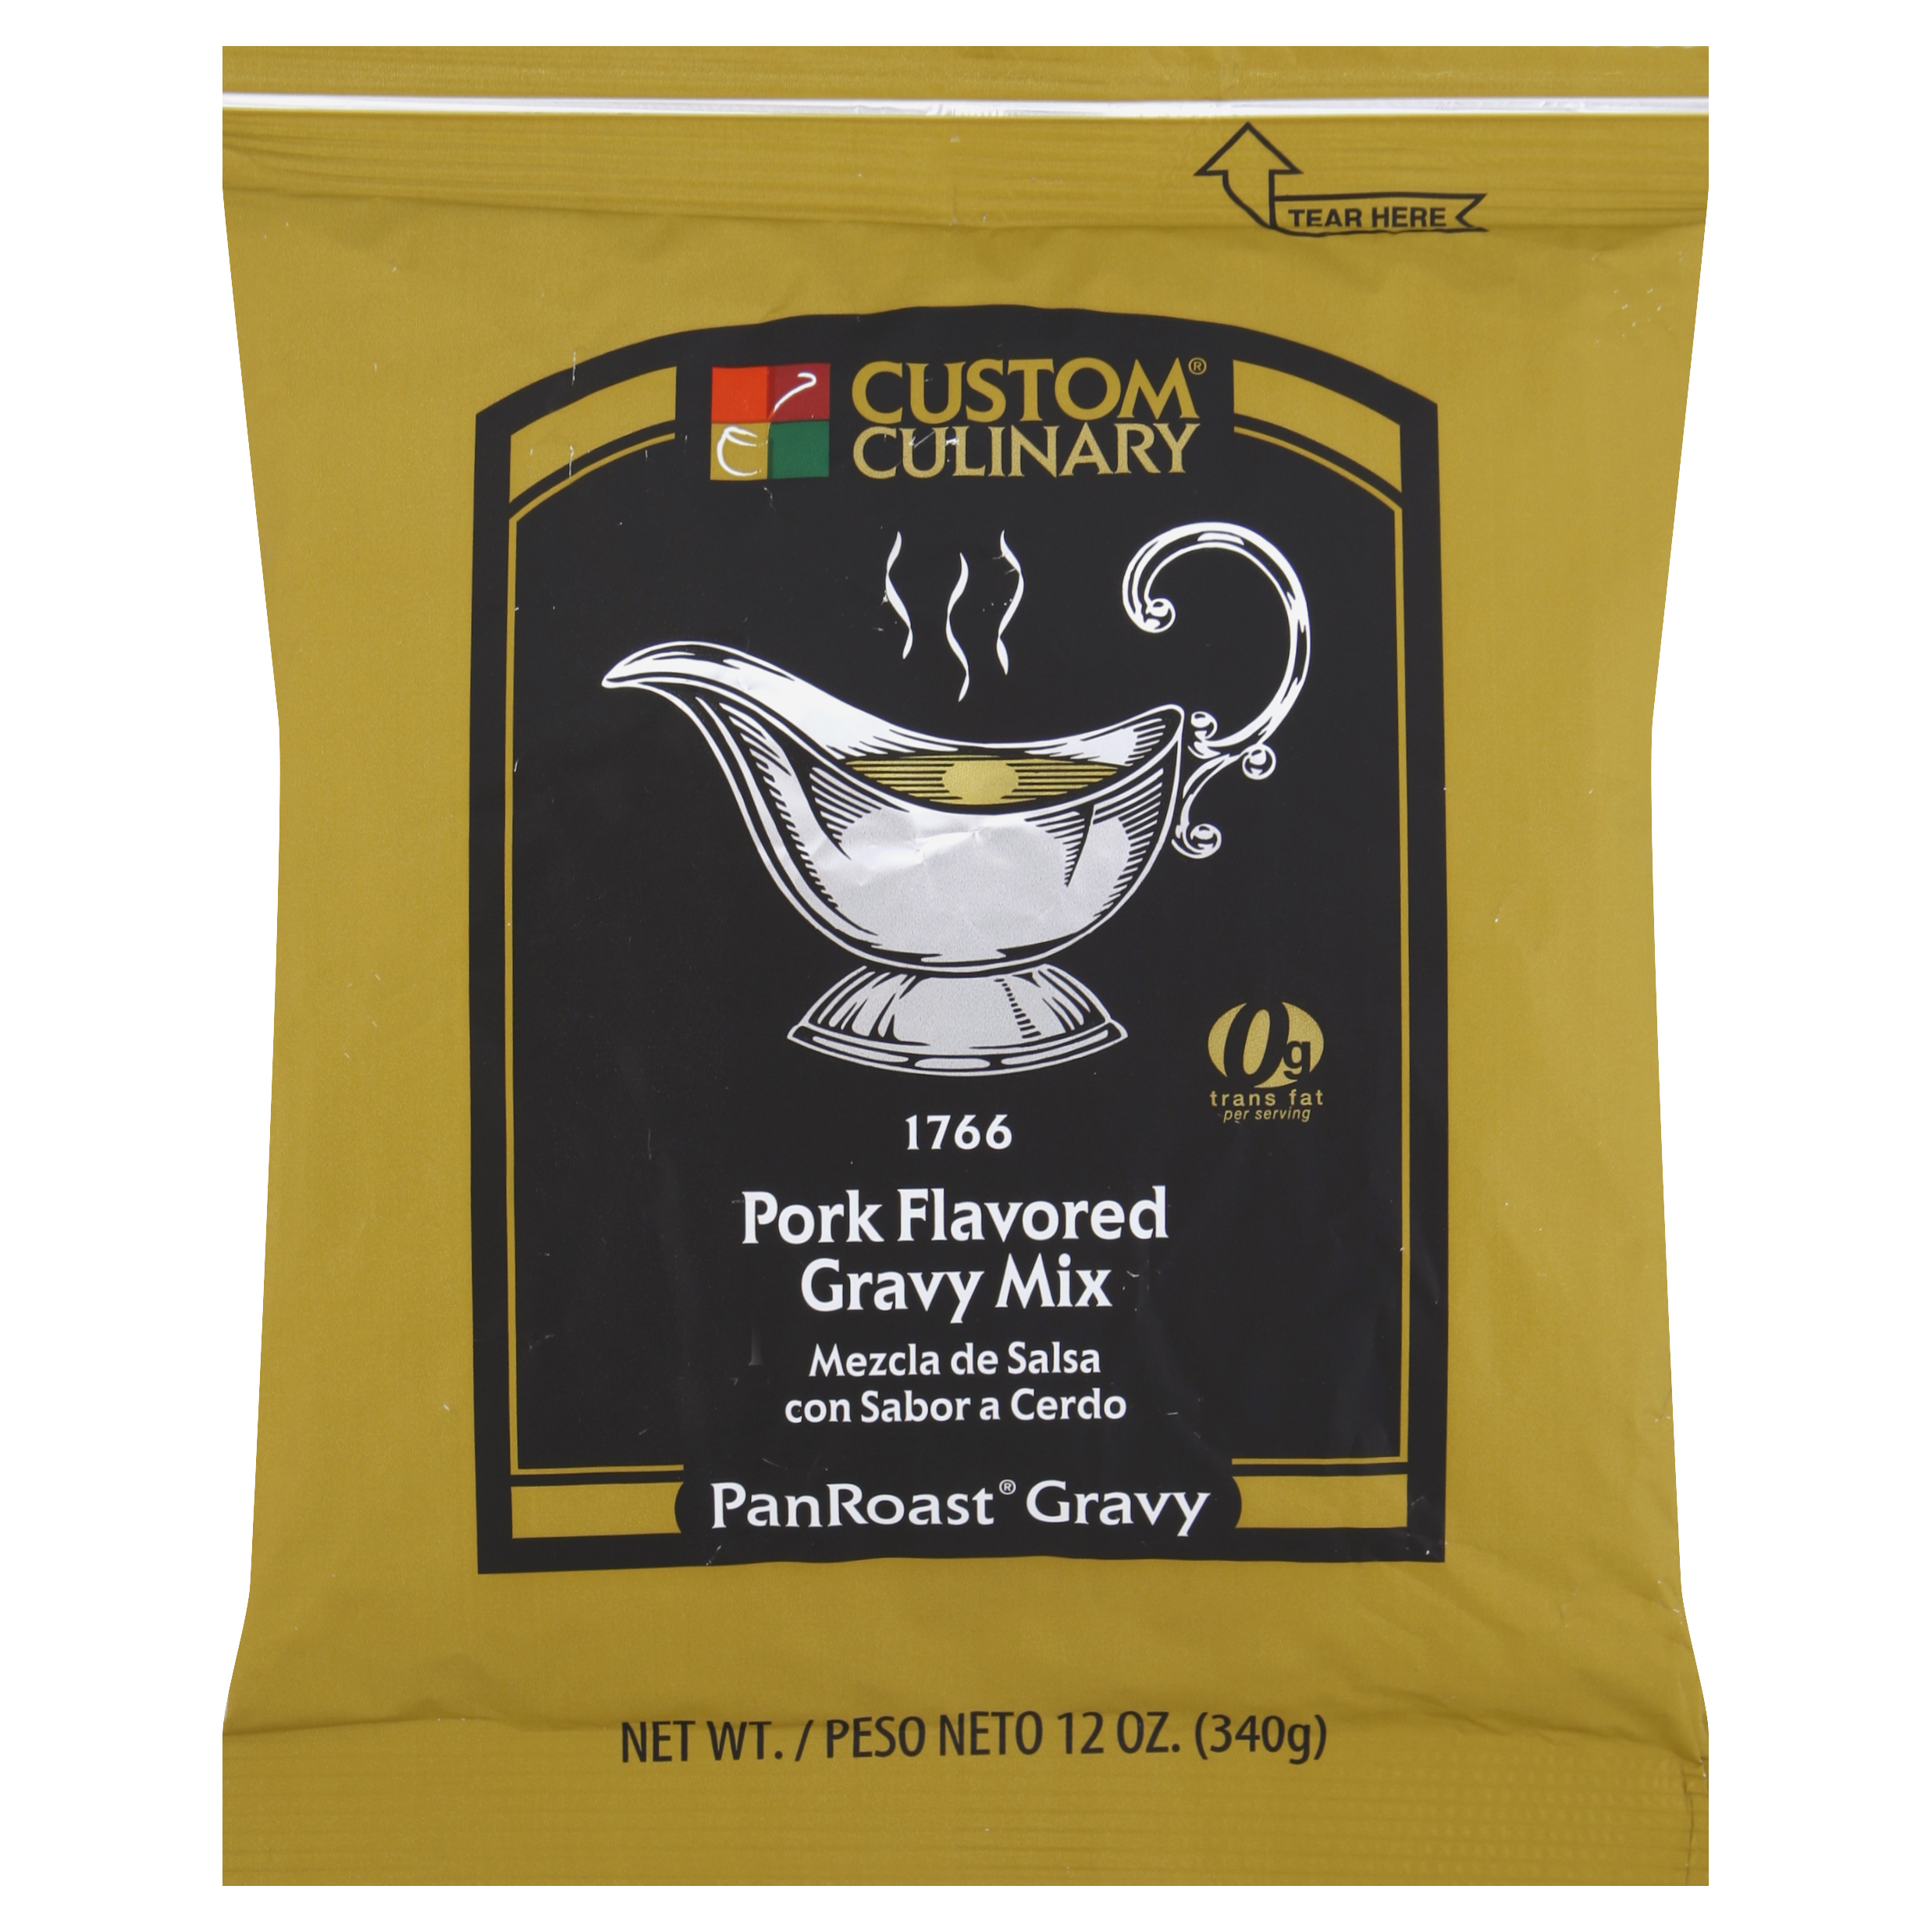 1766 - PanRoast Pork Flavored Gravy Mix